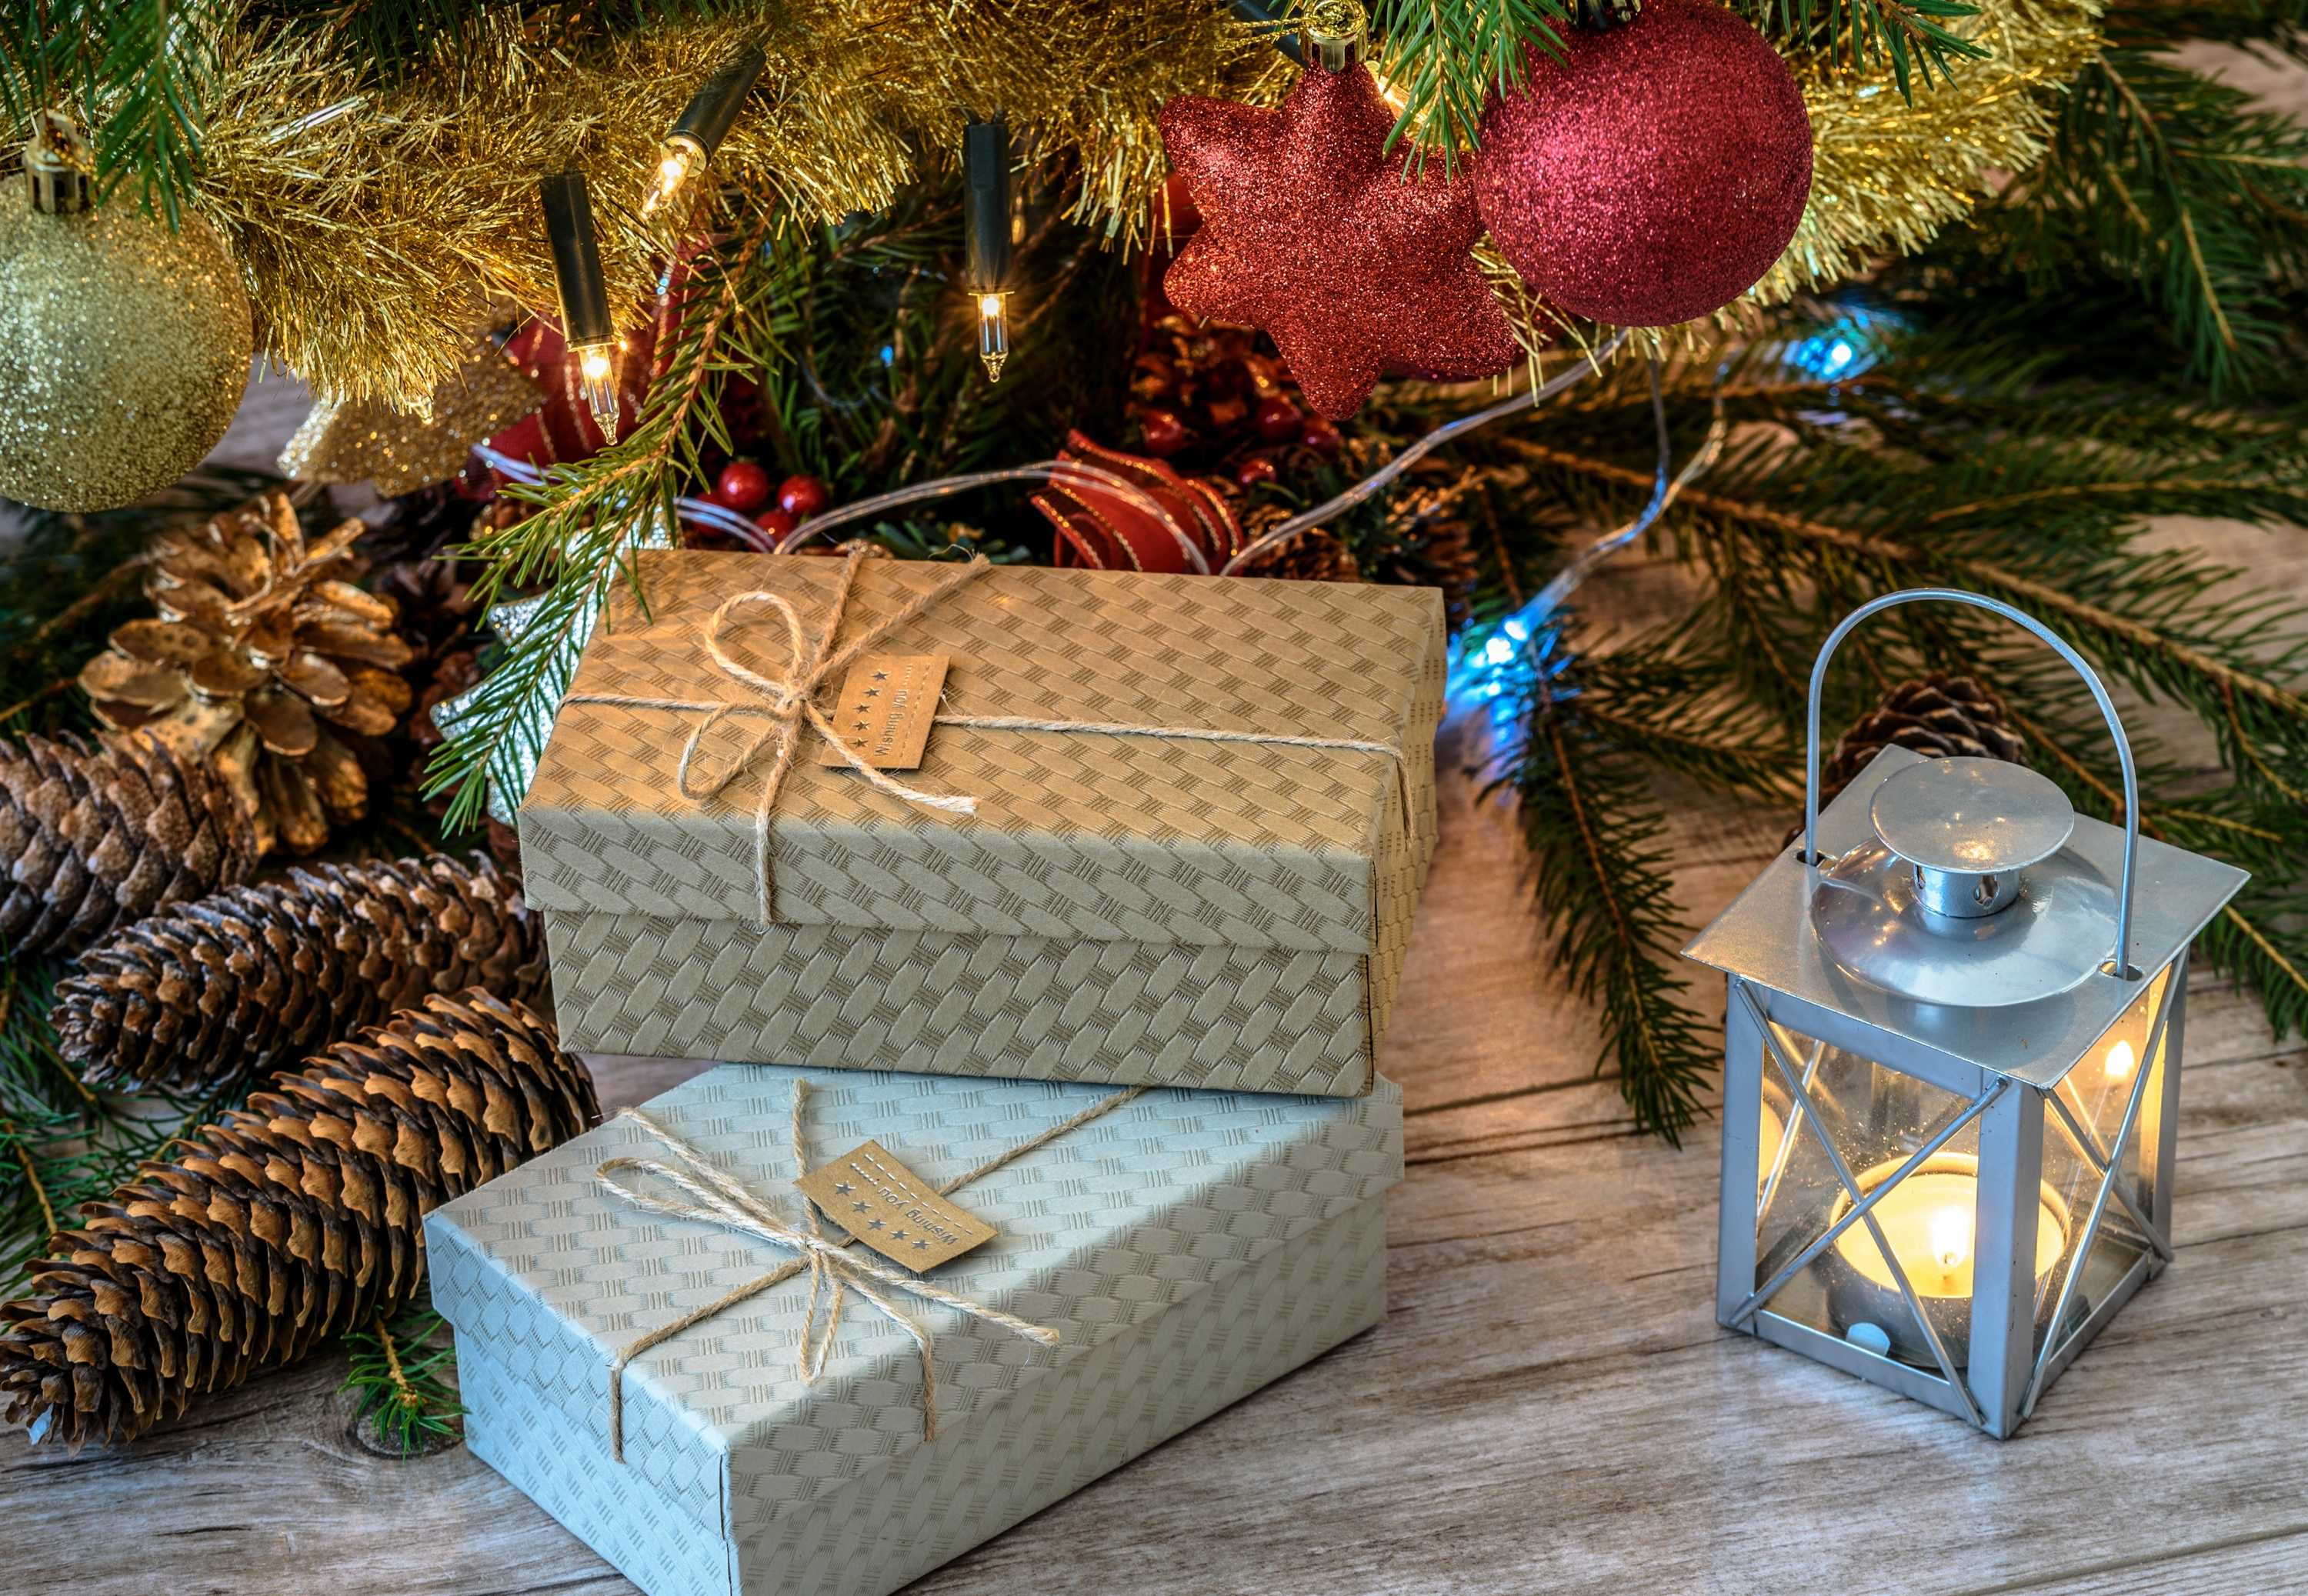 wrapped gifts by tree